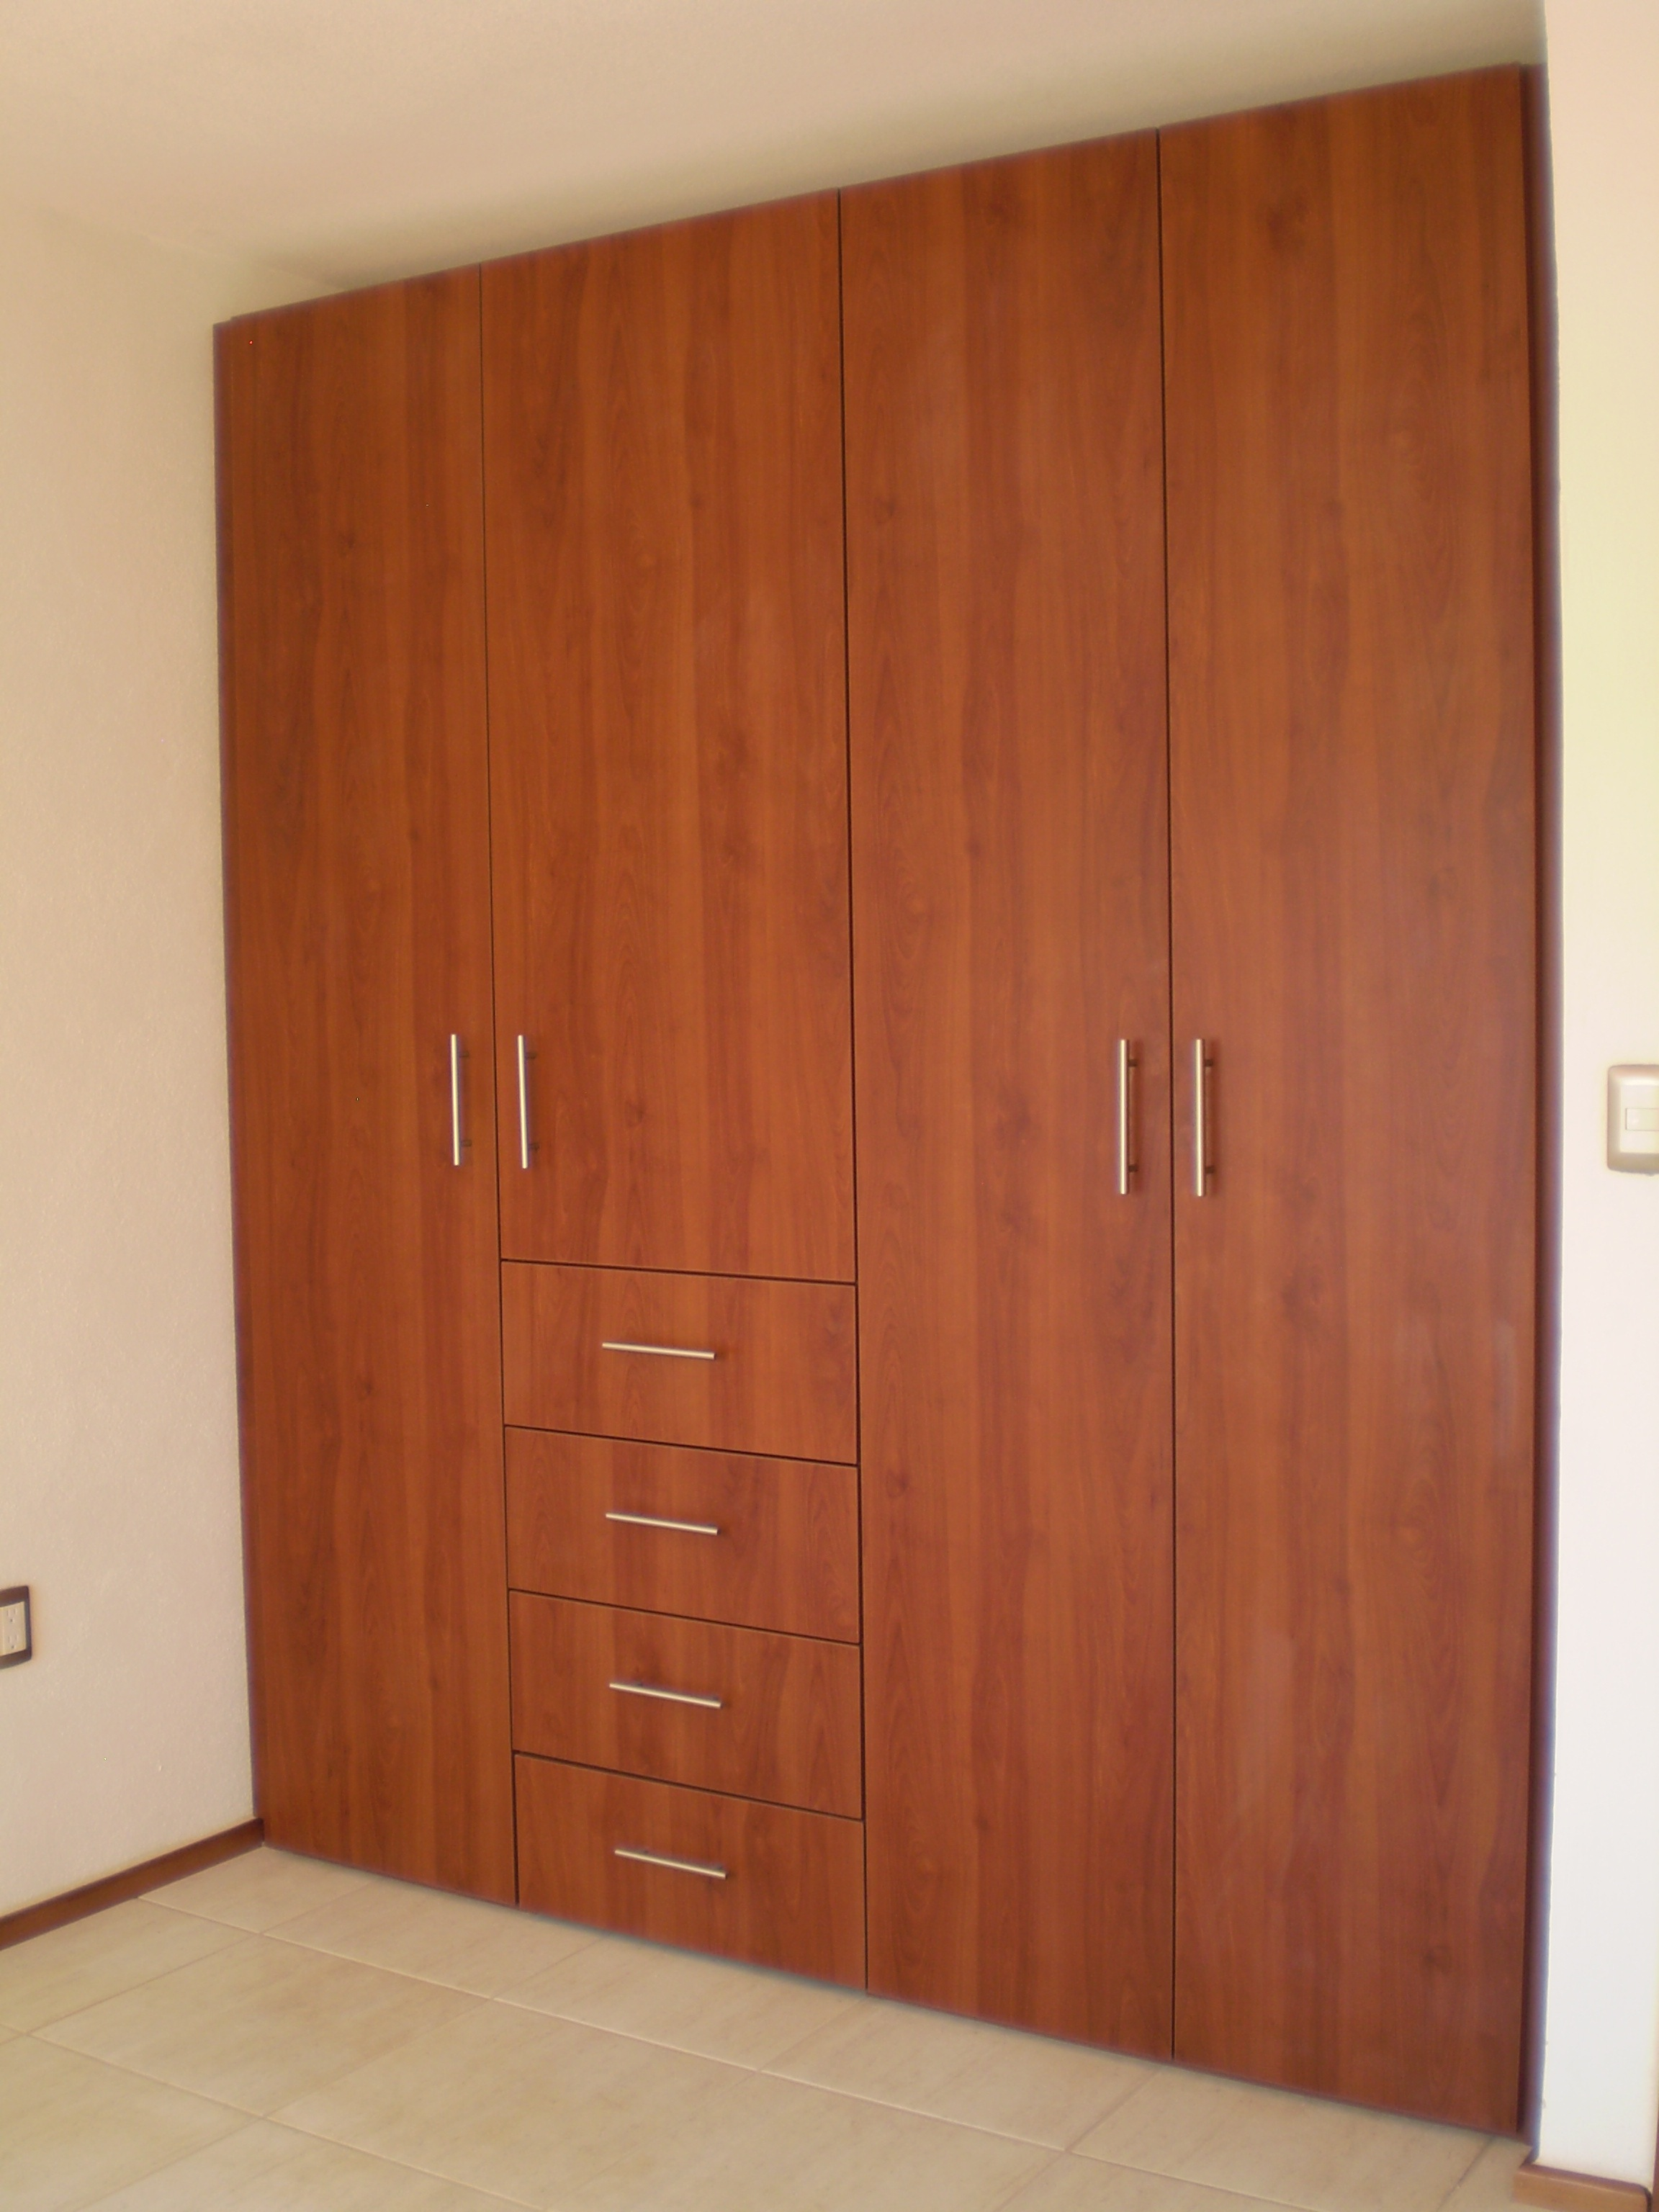 Exito muebles closet for Closet para habitaciones